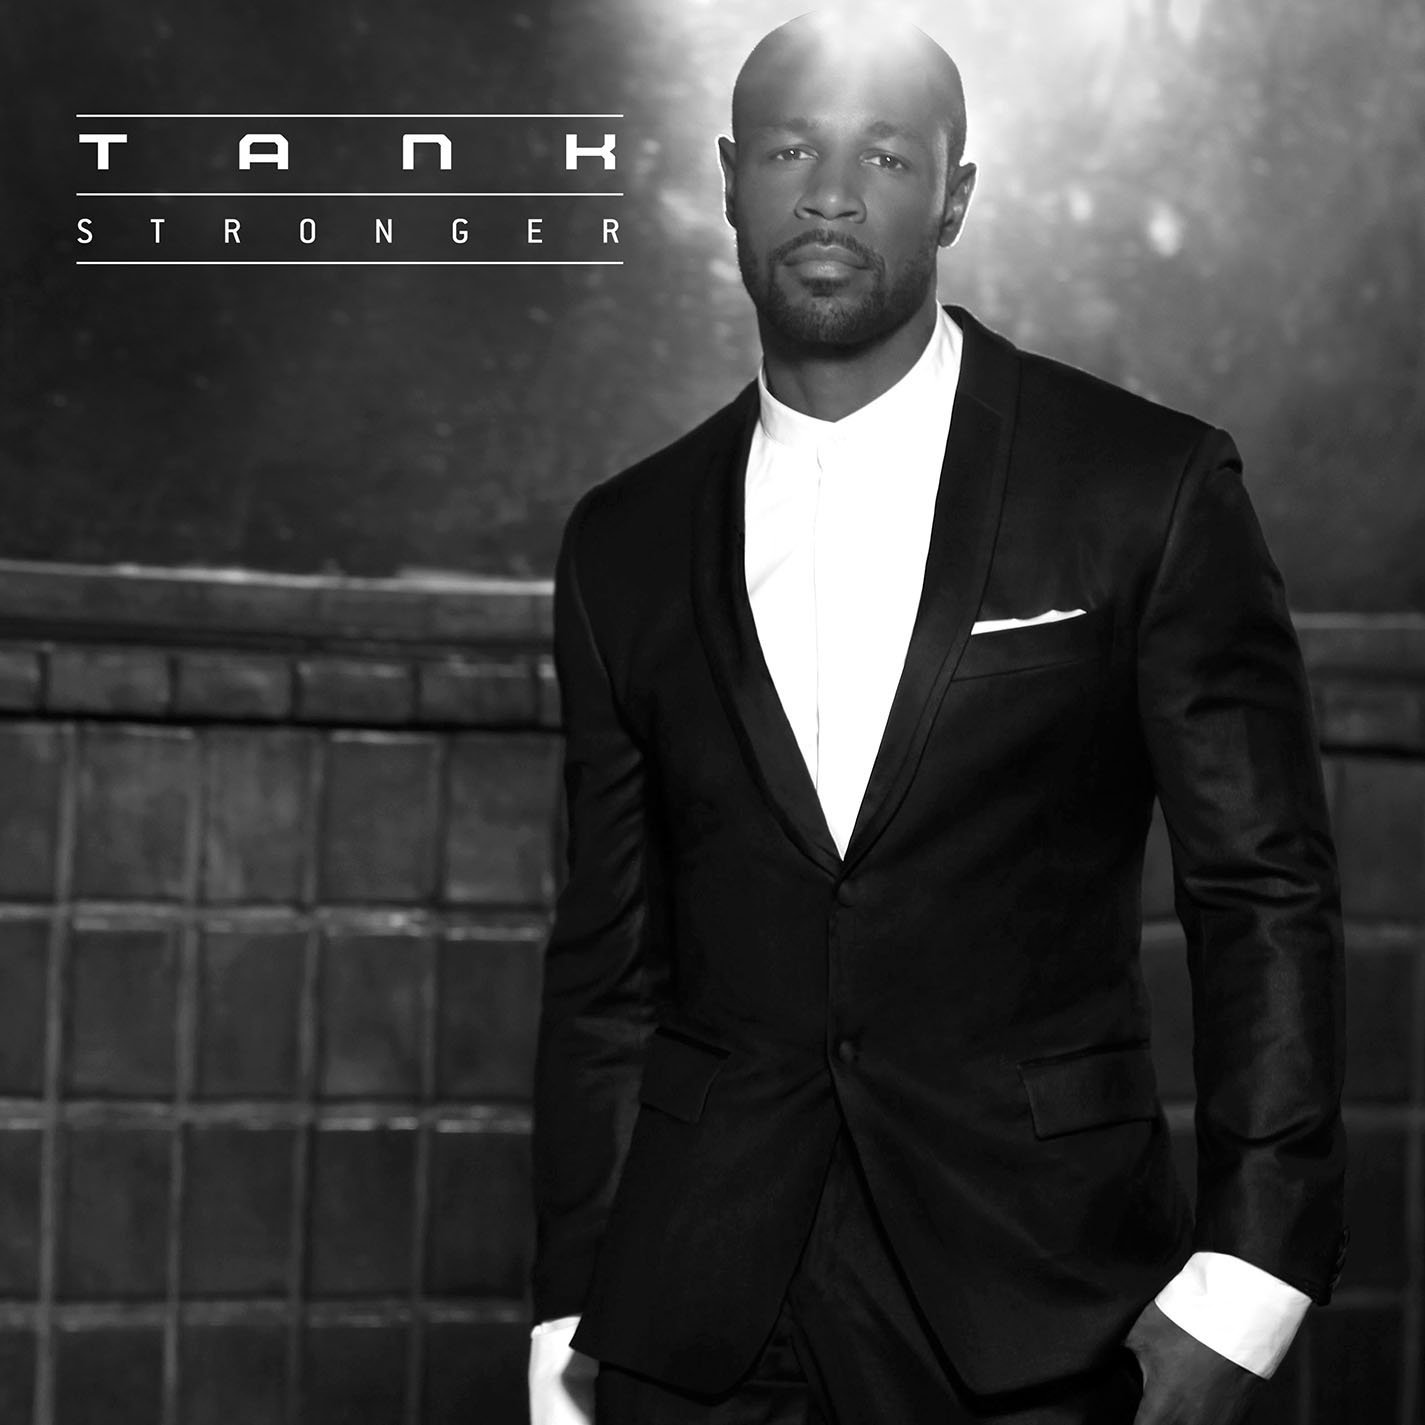 Tank Shows Strengths and Flaws Alike On 'Stronger'